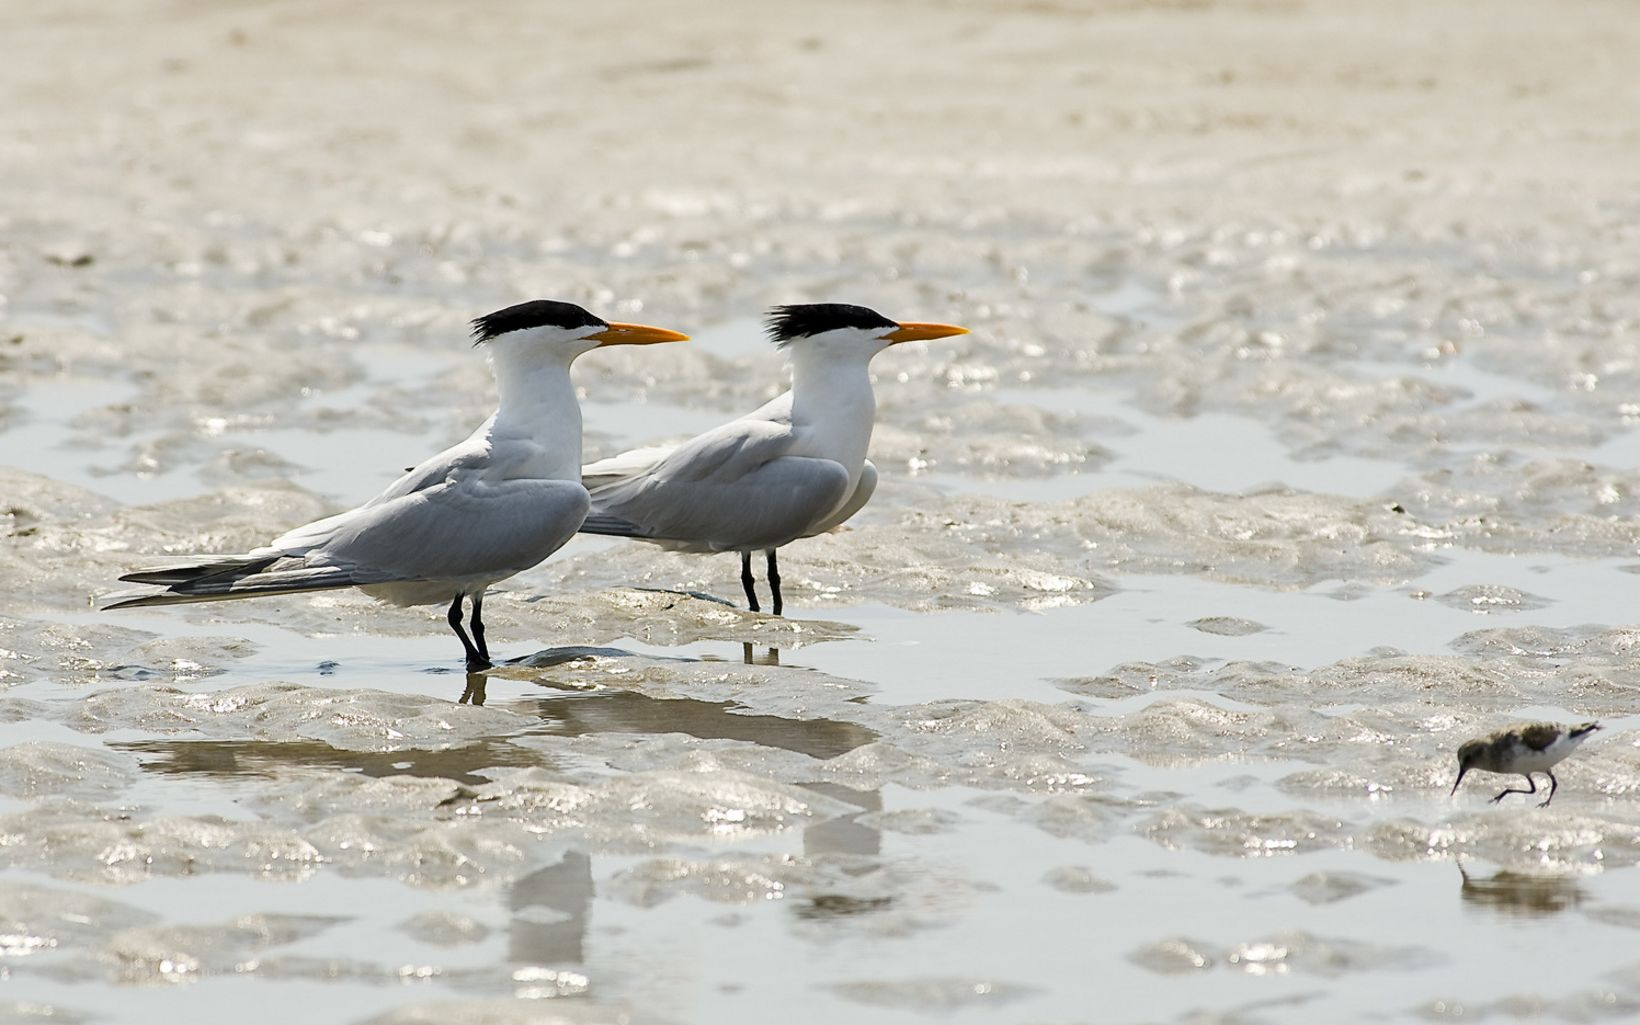 Royal terns standing on the beach